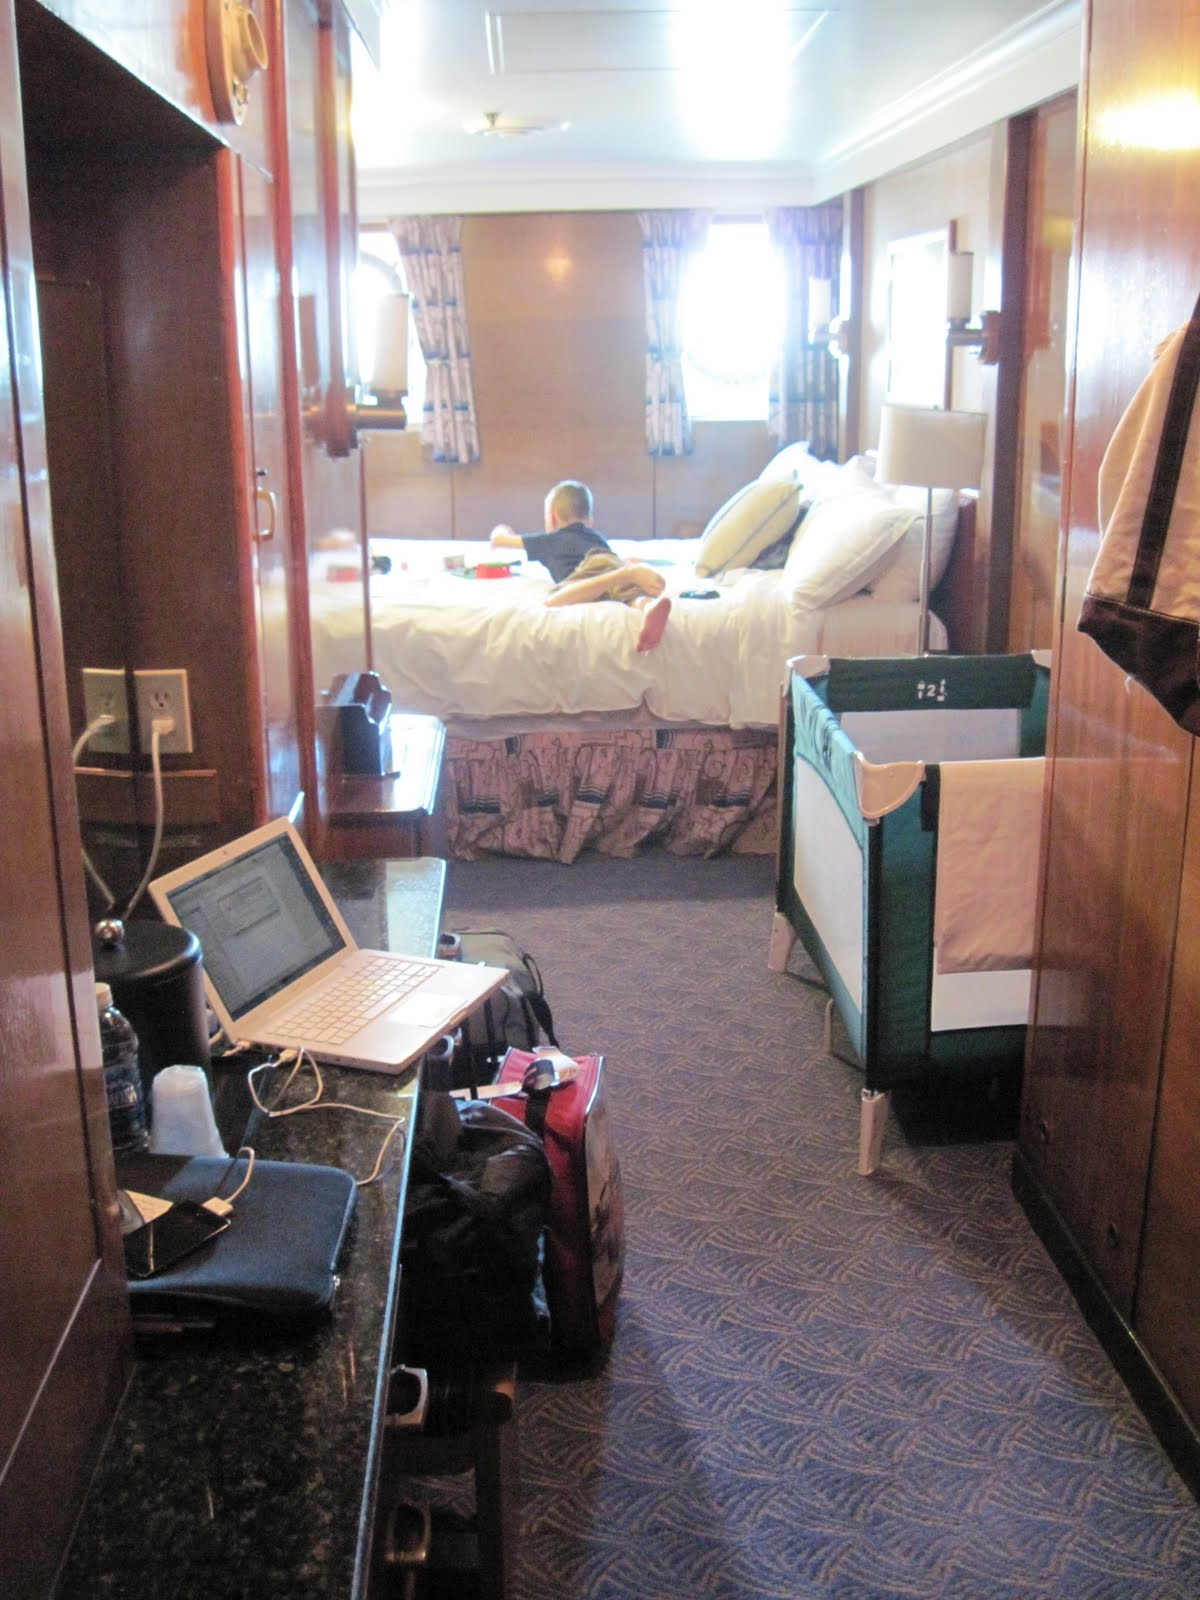 Inside A Cruise Ship Engine Room: Symphony In B & G Major : Spring Break Part III, The Queen